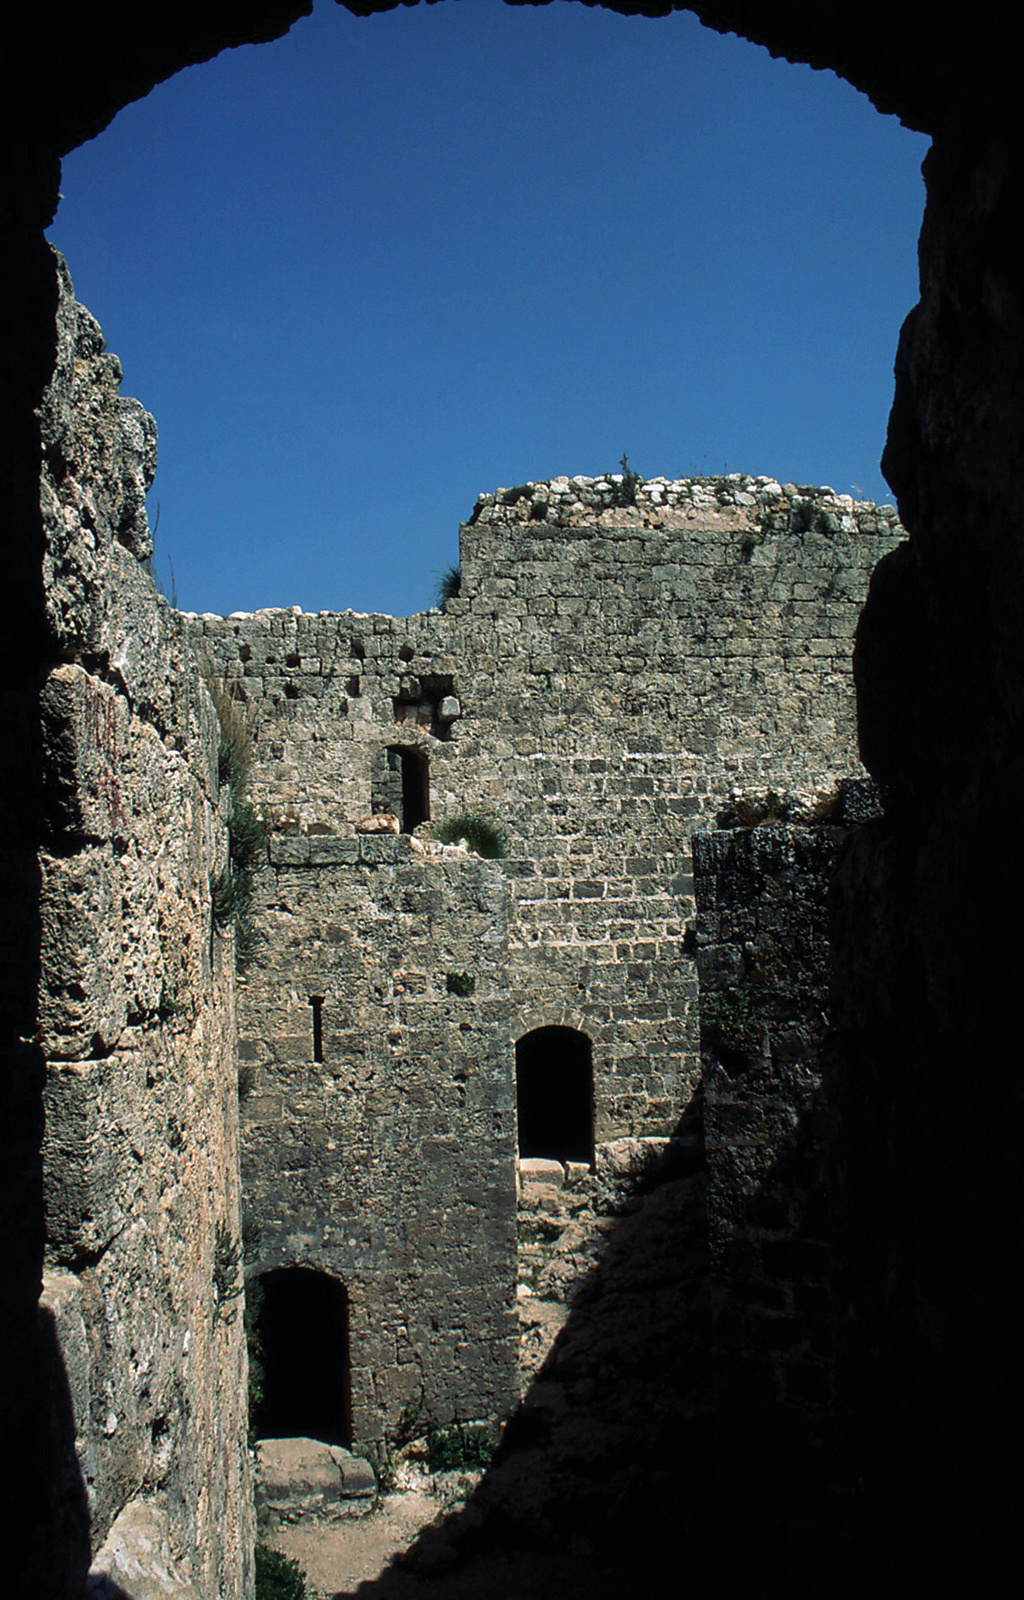 Detail inside Old Fortress north of Beirut, Lebanon